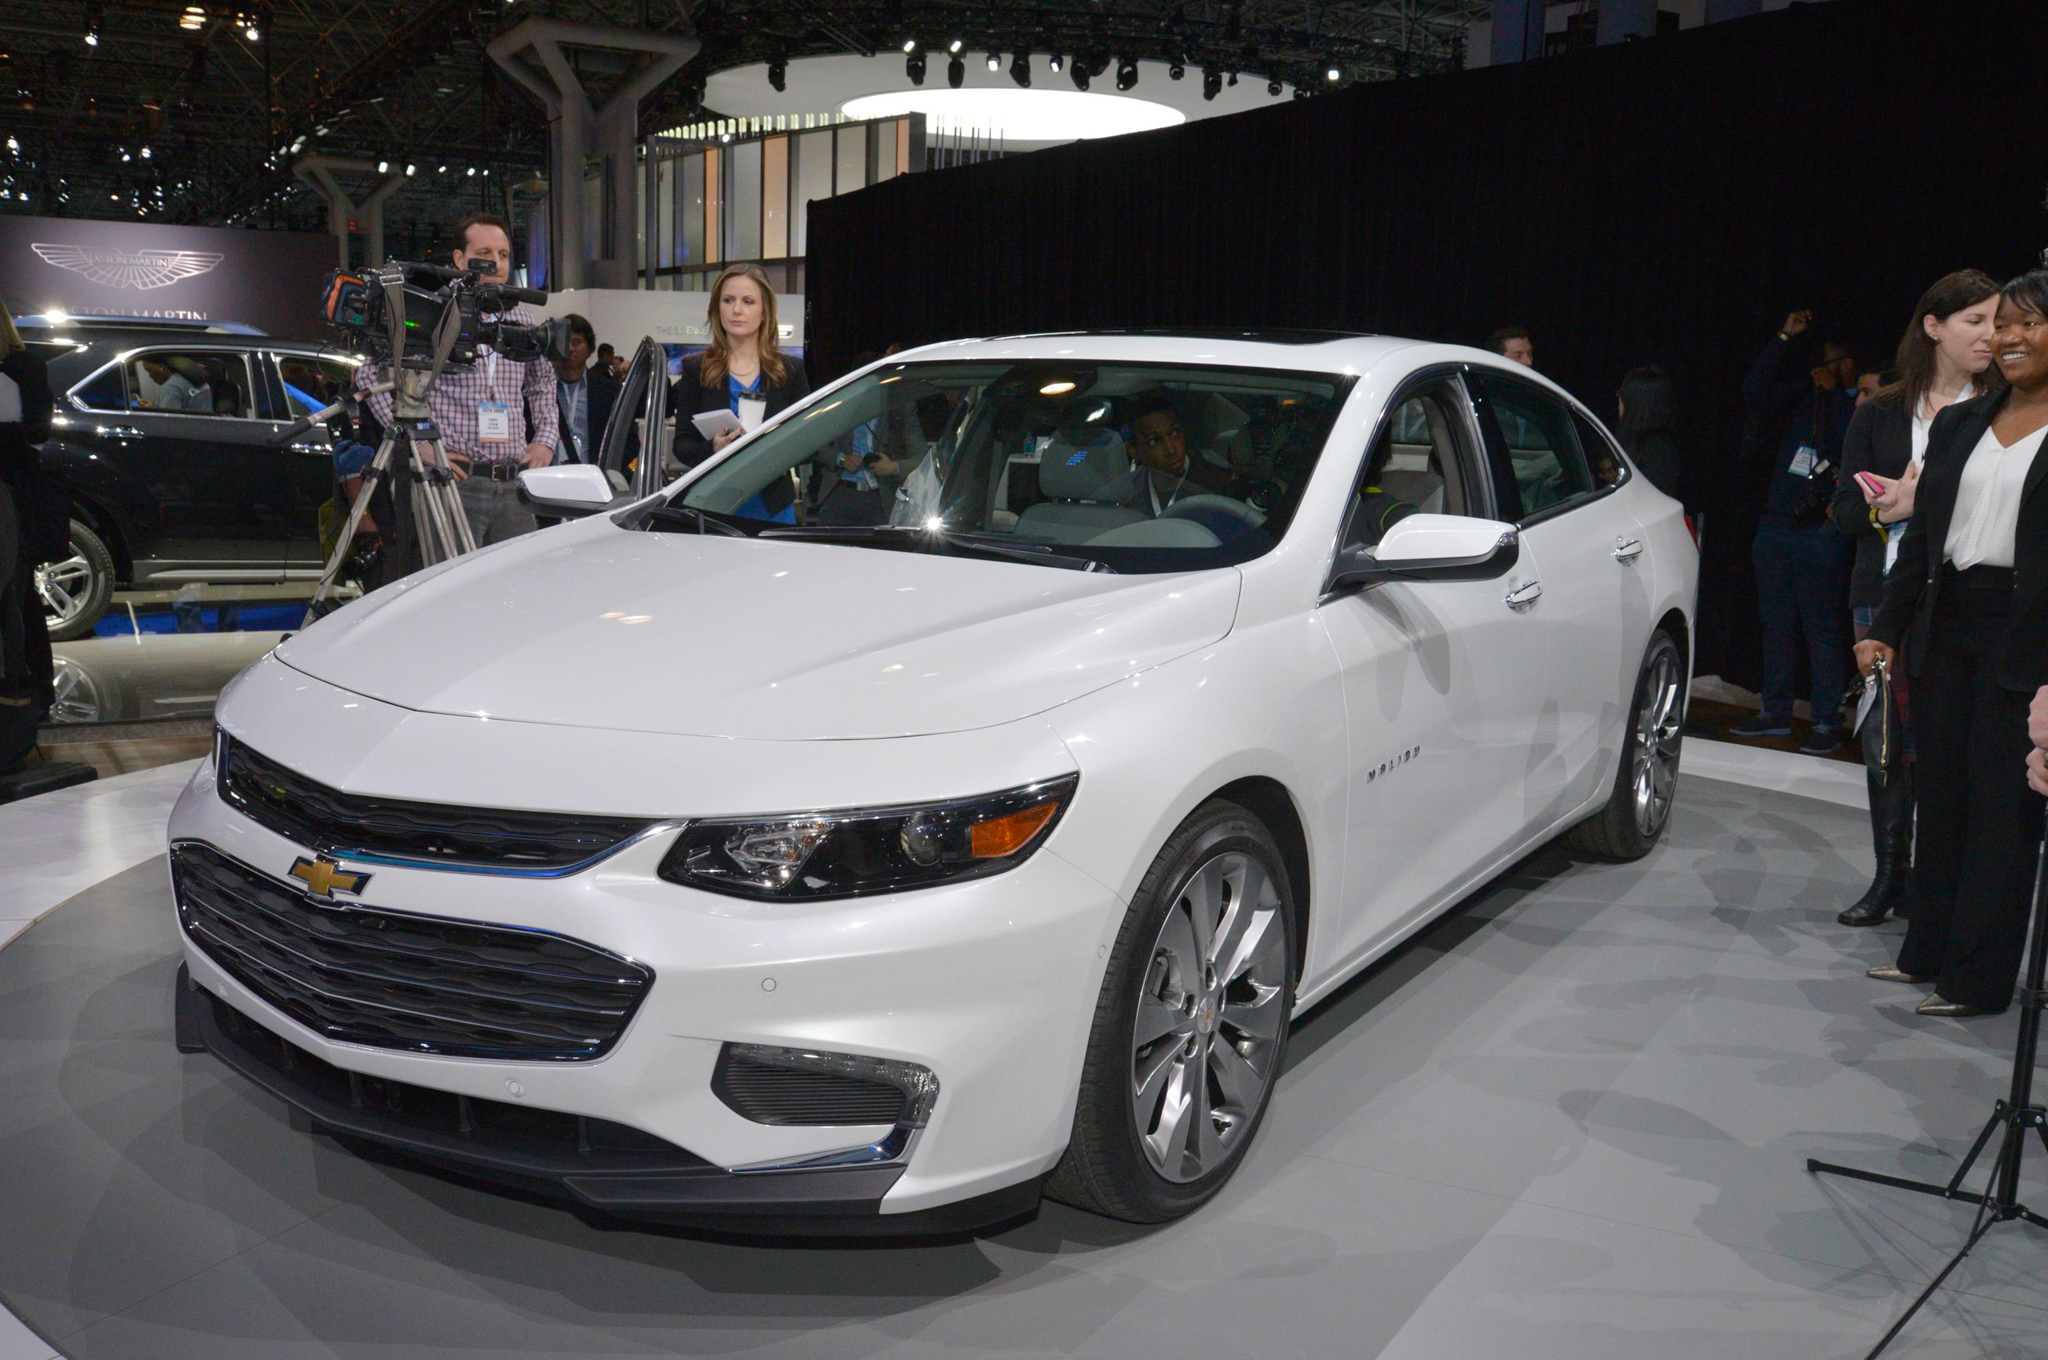 2016 Chevy Cars >> 2016 Chevrolet Malibu First Look Motor Trend Motor Trend